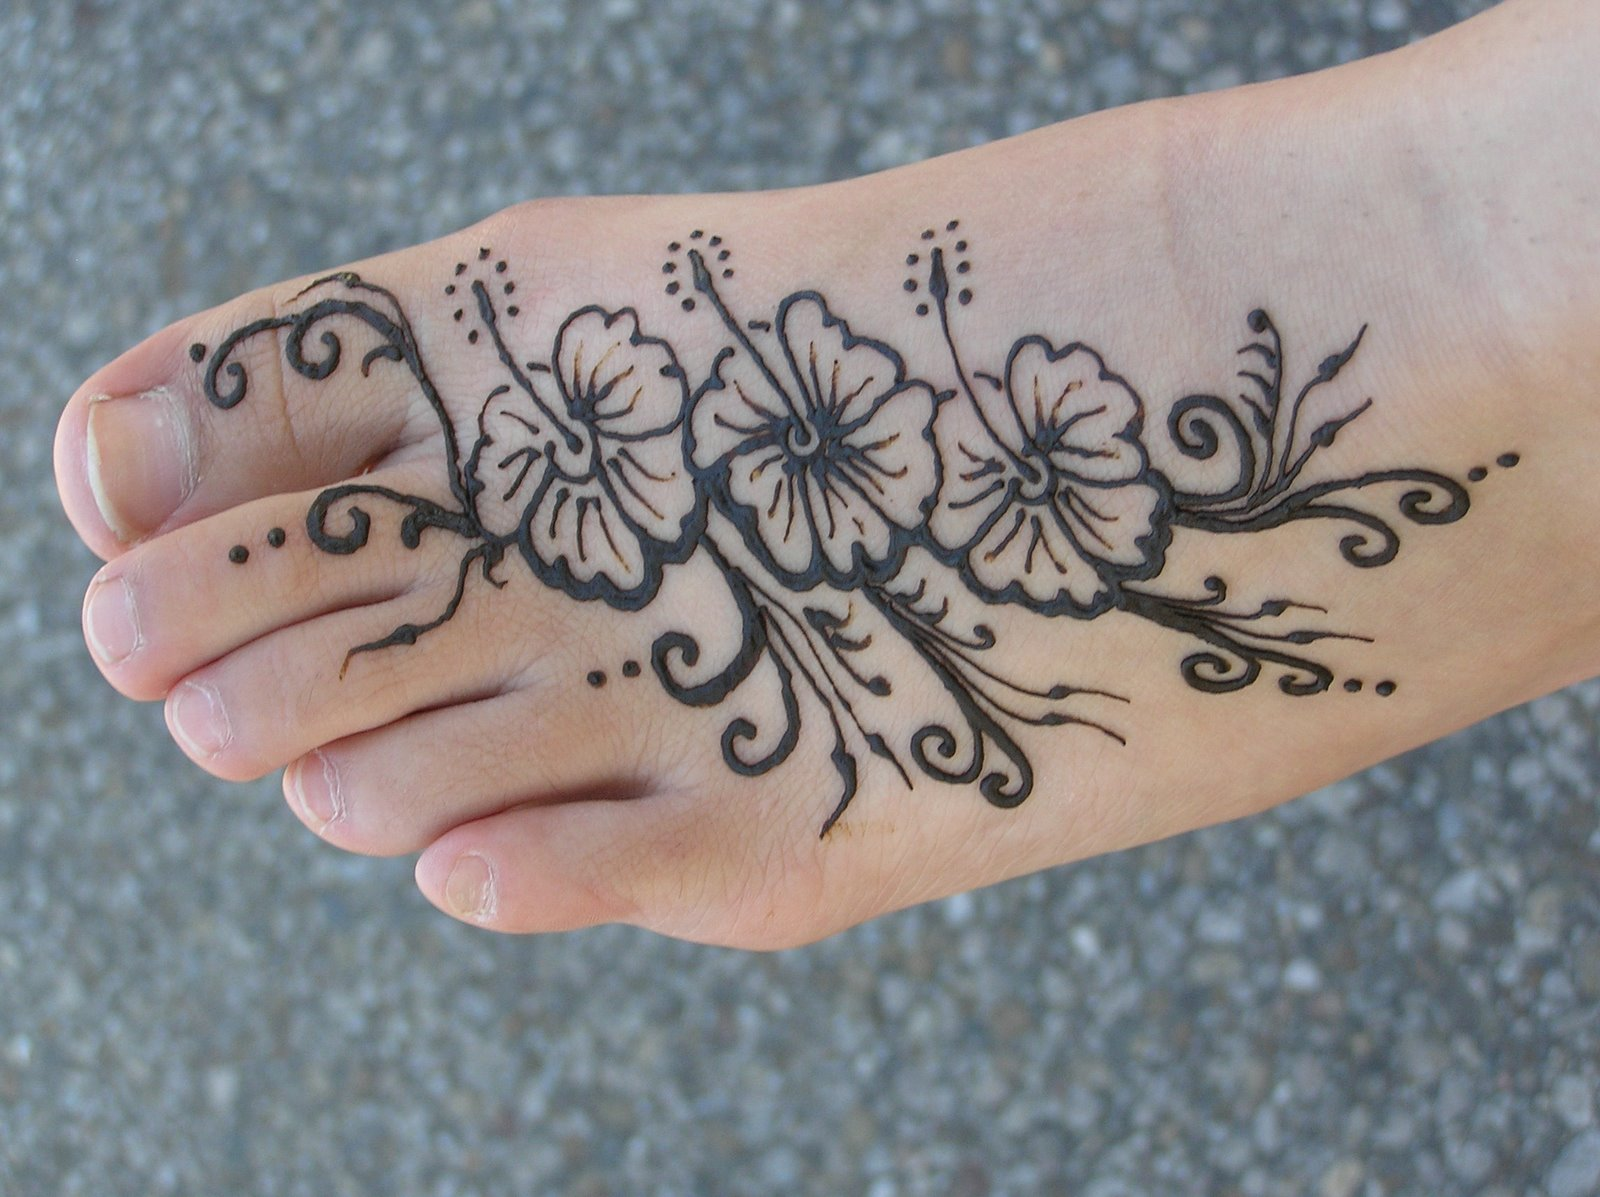 henna tattoos images.jpg